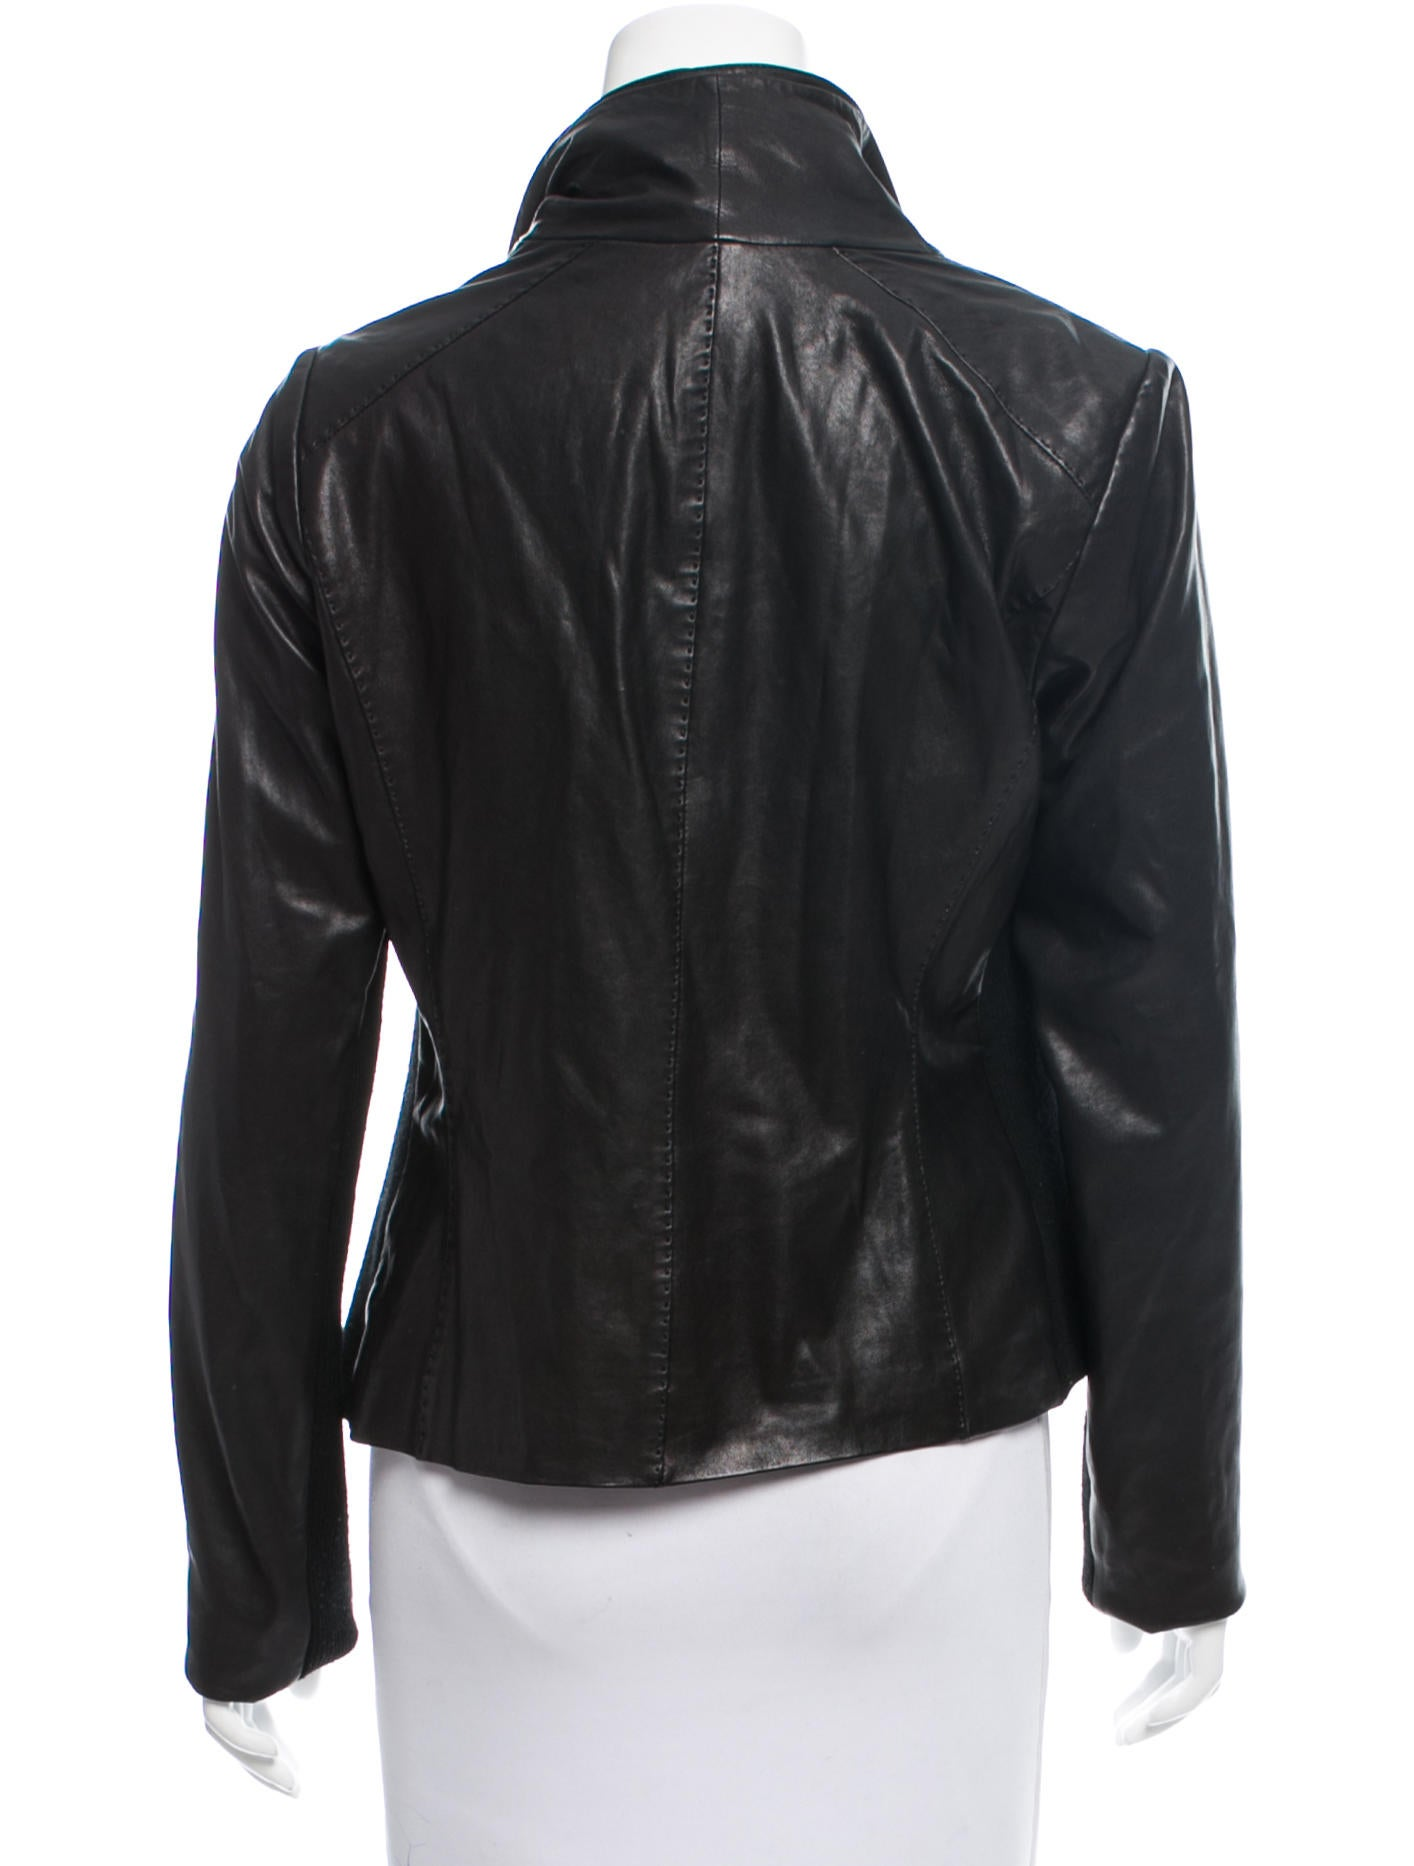 Knit leather jacket